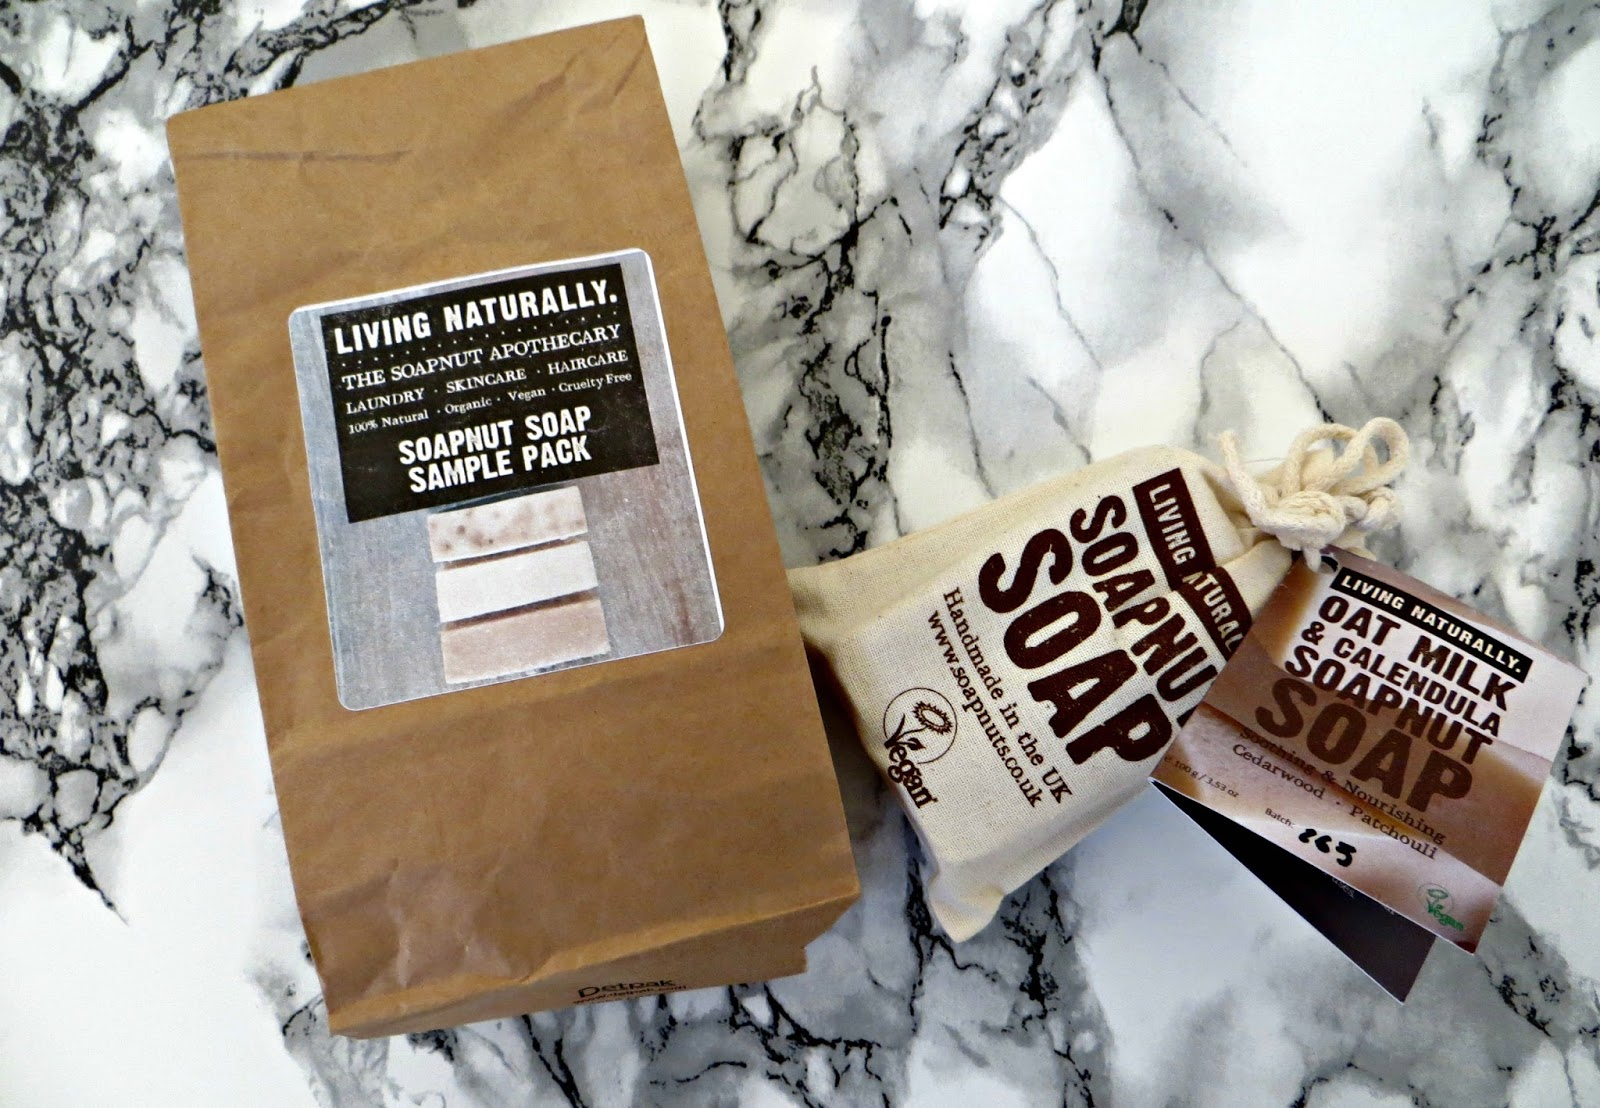 Living Naturally Soapnuts Soap review